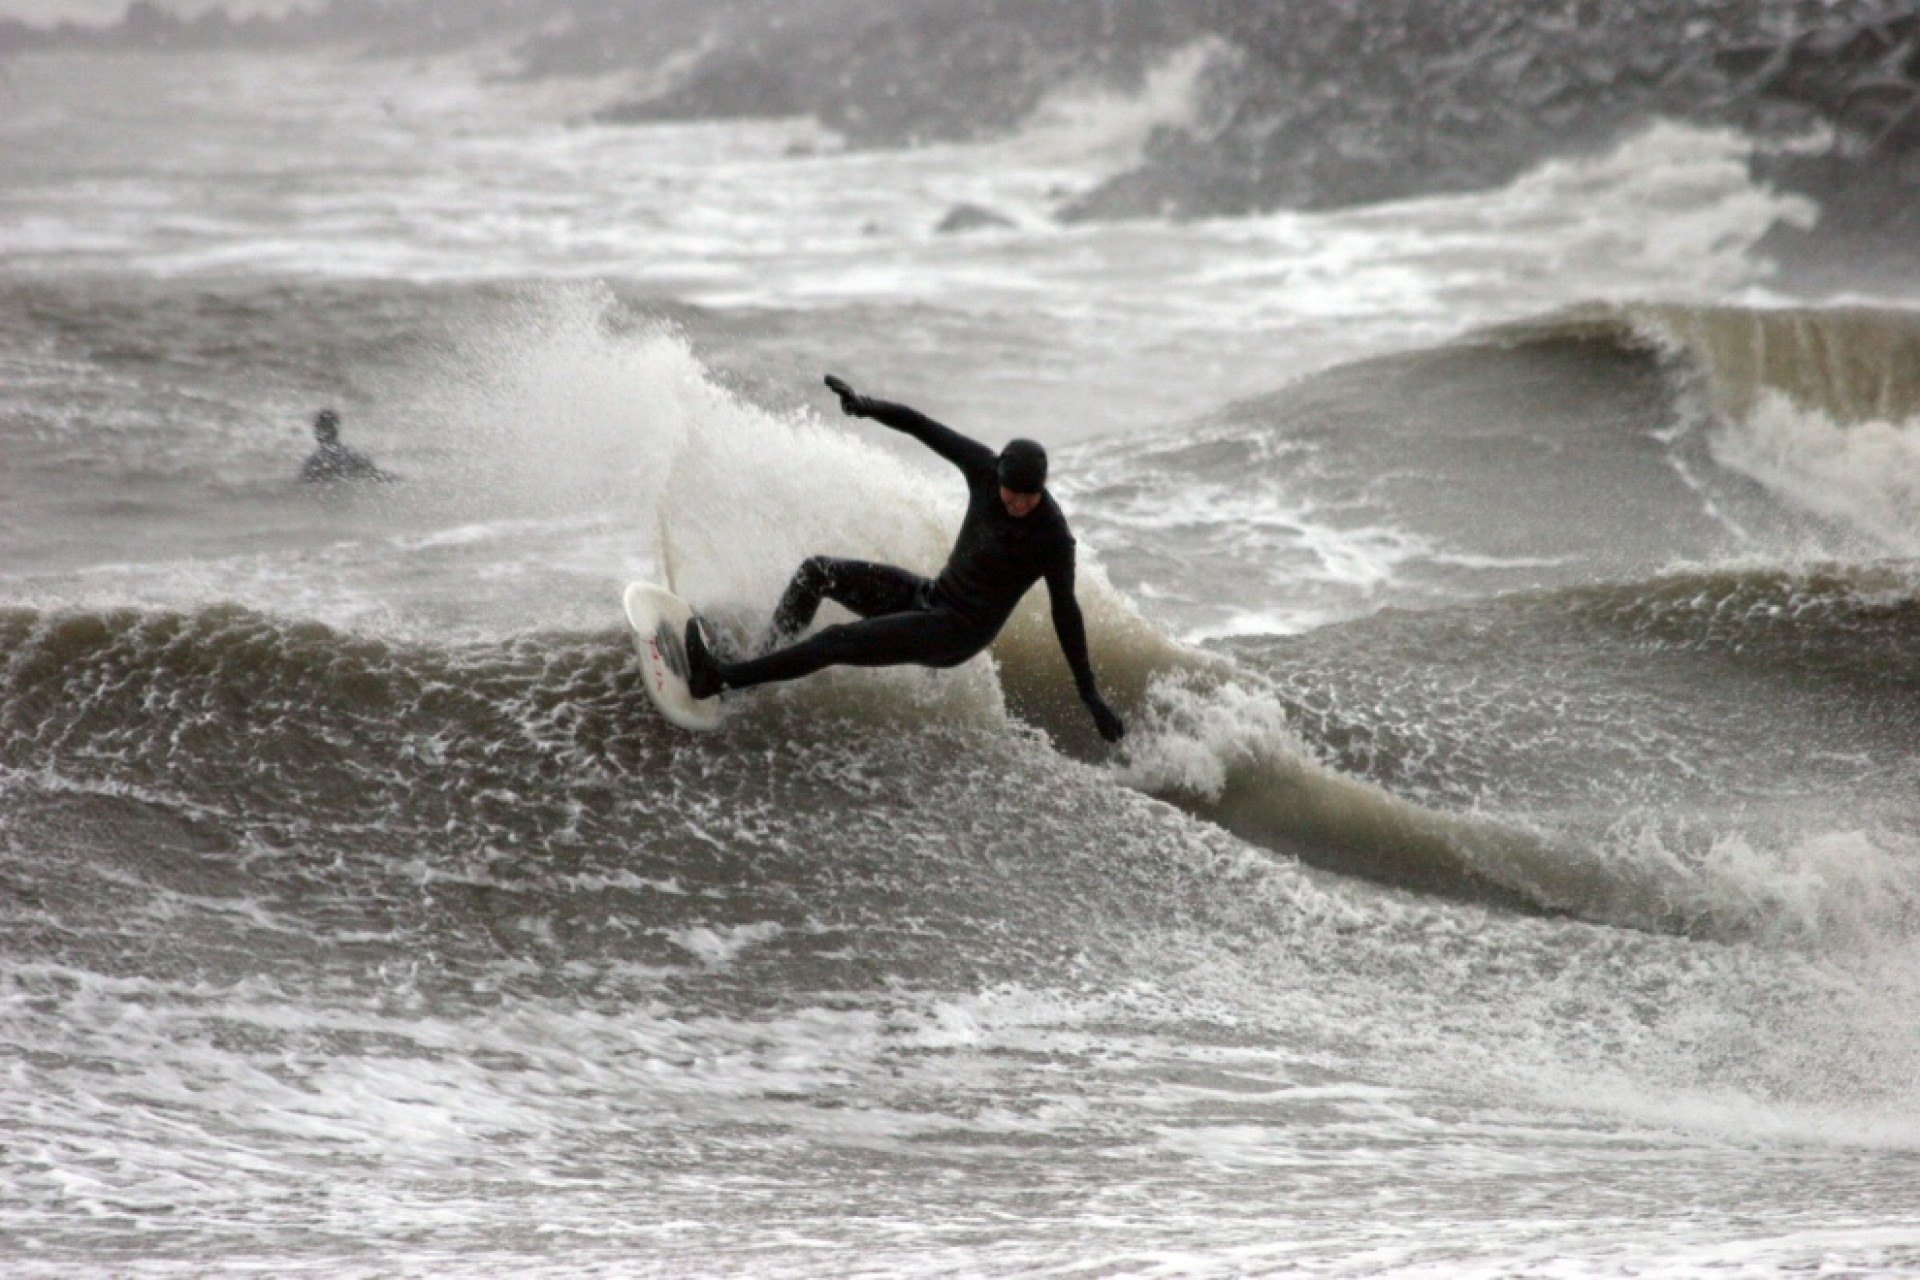 holmstroem surfing's photo of Nørre Vorupør